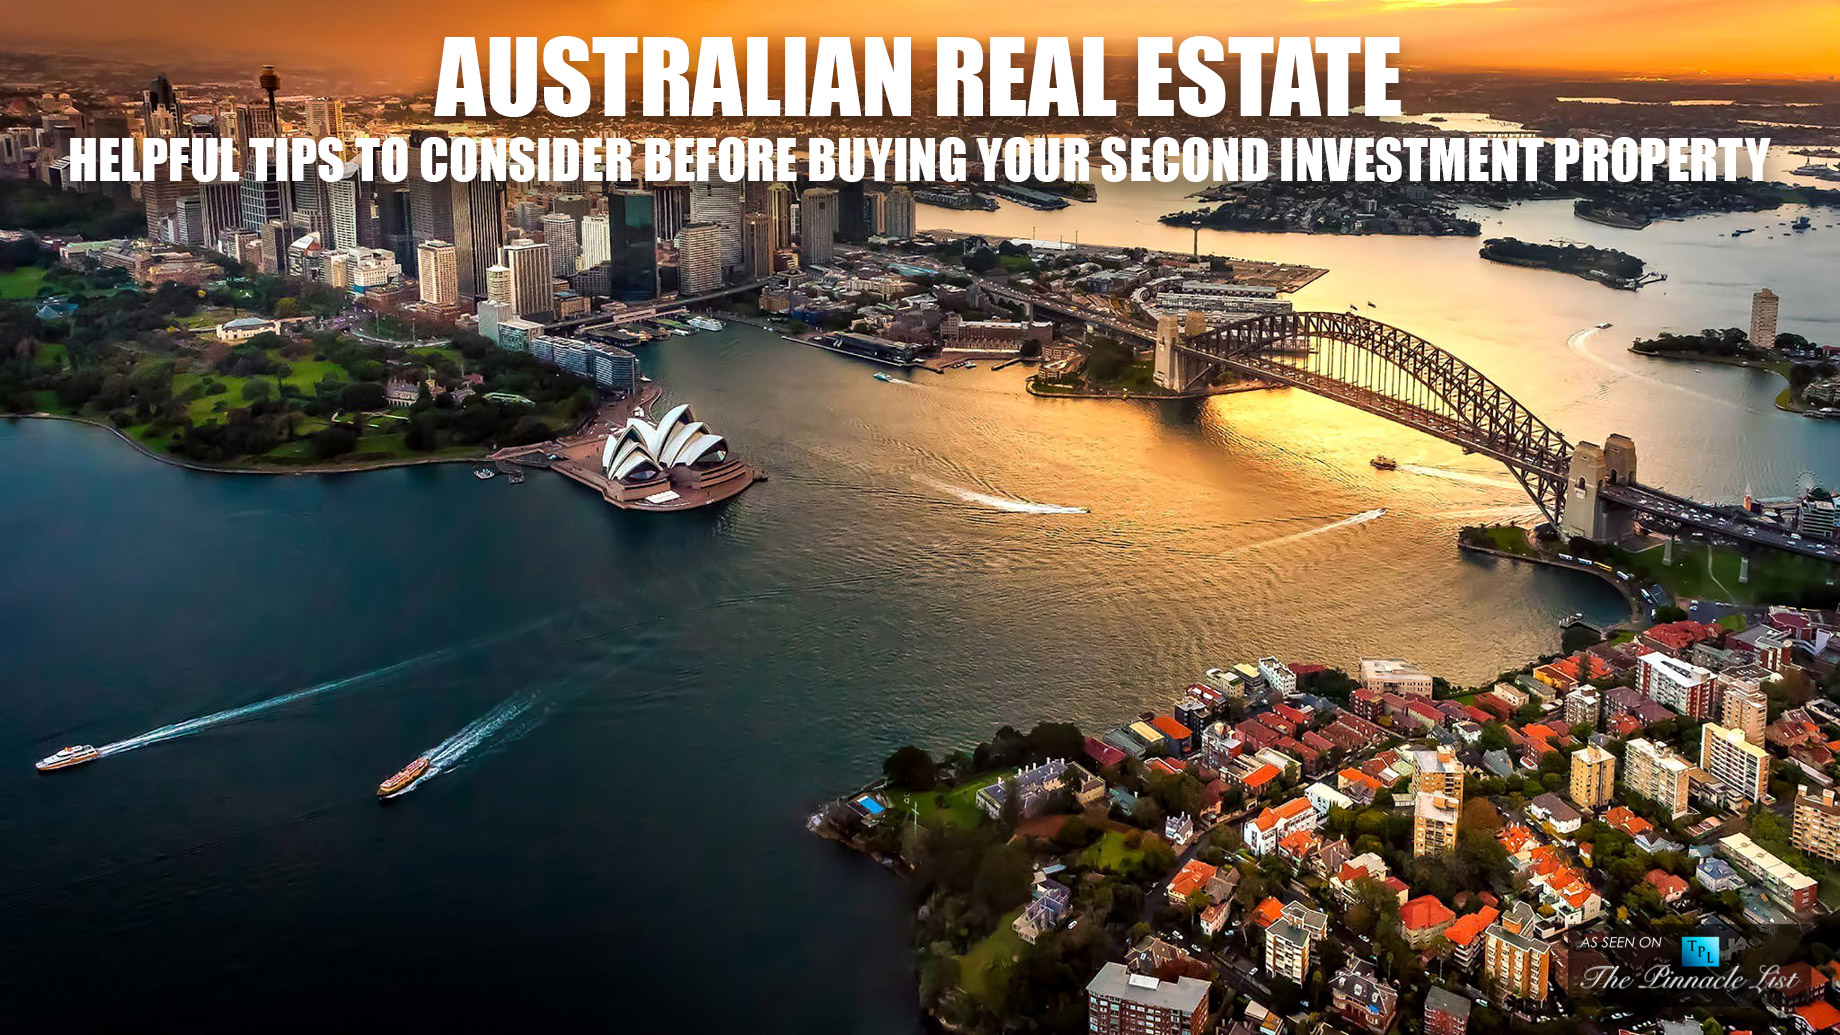 Australian Real Estate - Helpful Tips to Consider Before Buying Your Second Investment Property